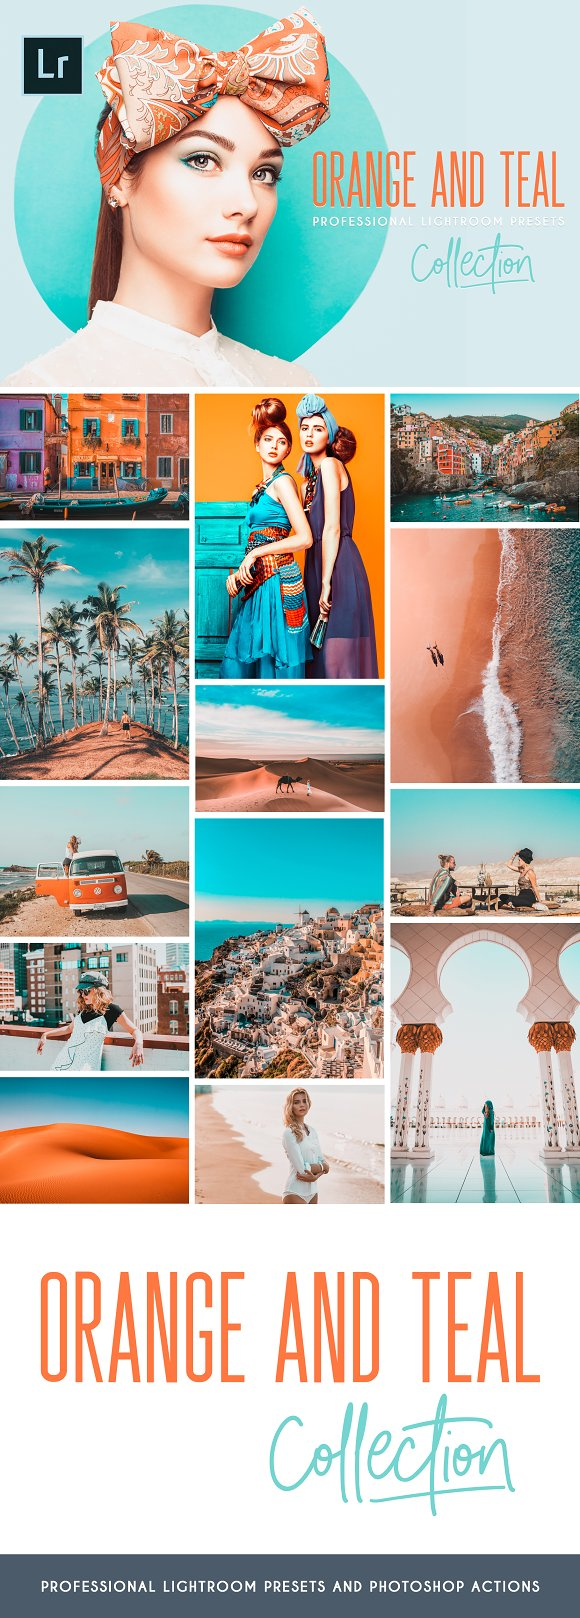 ORANGE AND TEAL LIGHTROOM PRESETS